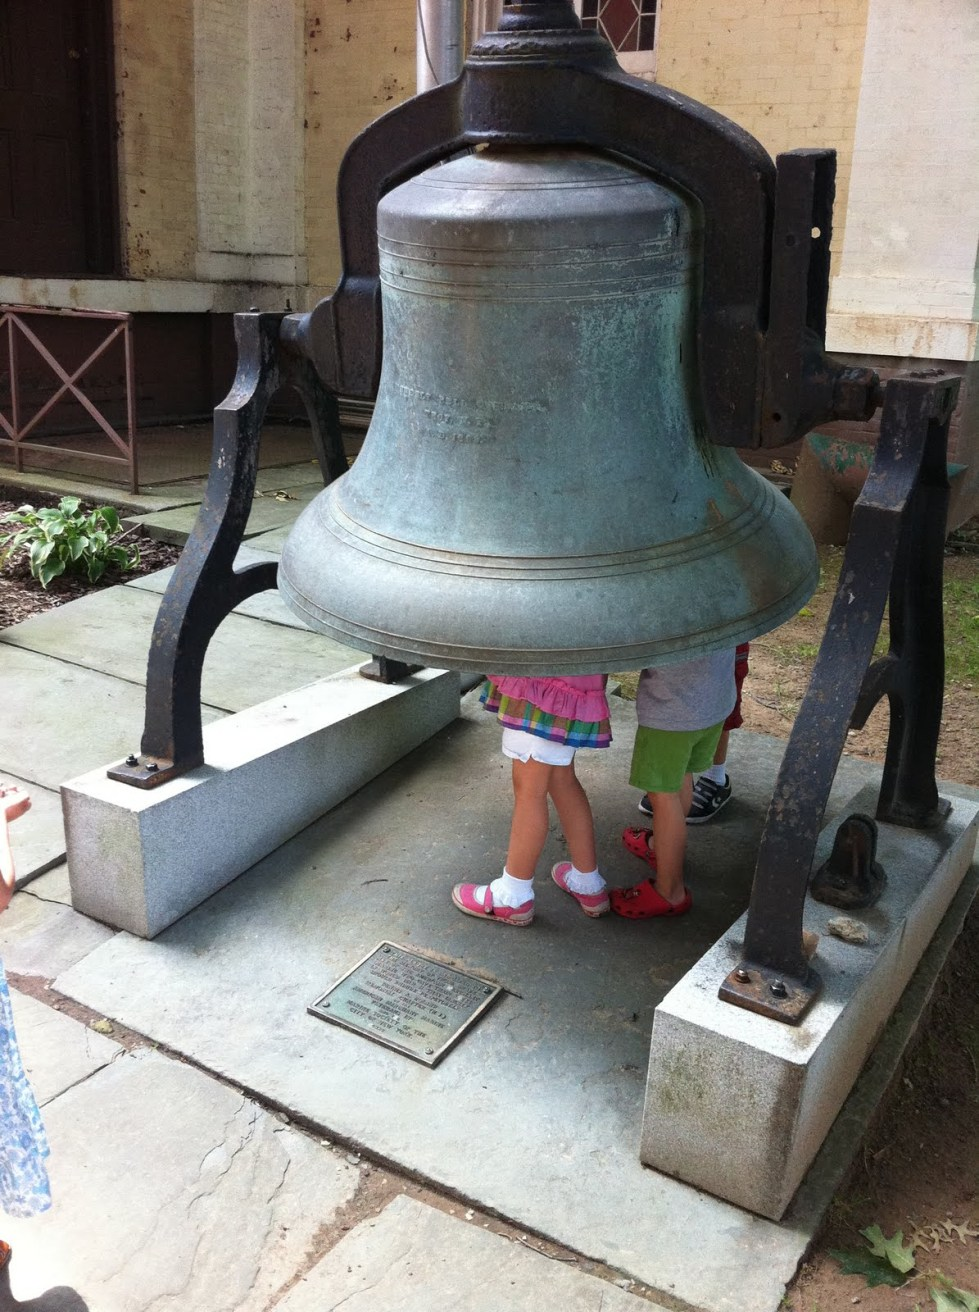 Things That Make Us Smile: A Bell